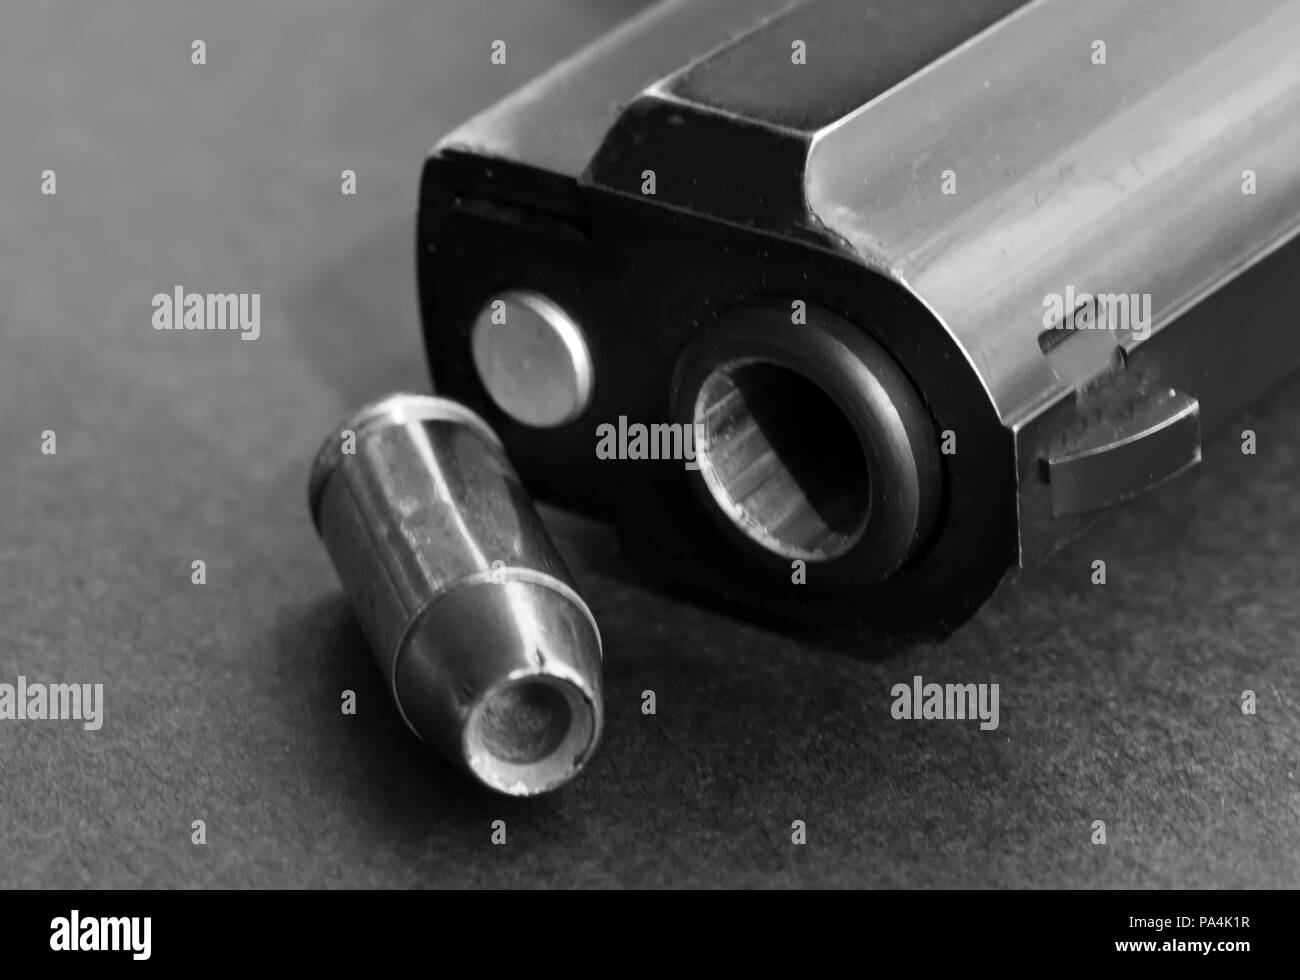 A single 40 caliber hollow point bullet standing next to the muzzle of a black pistol on a black background shown in black and white - Stock Image